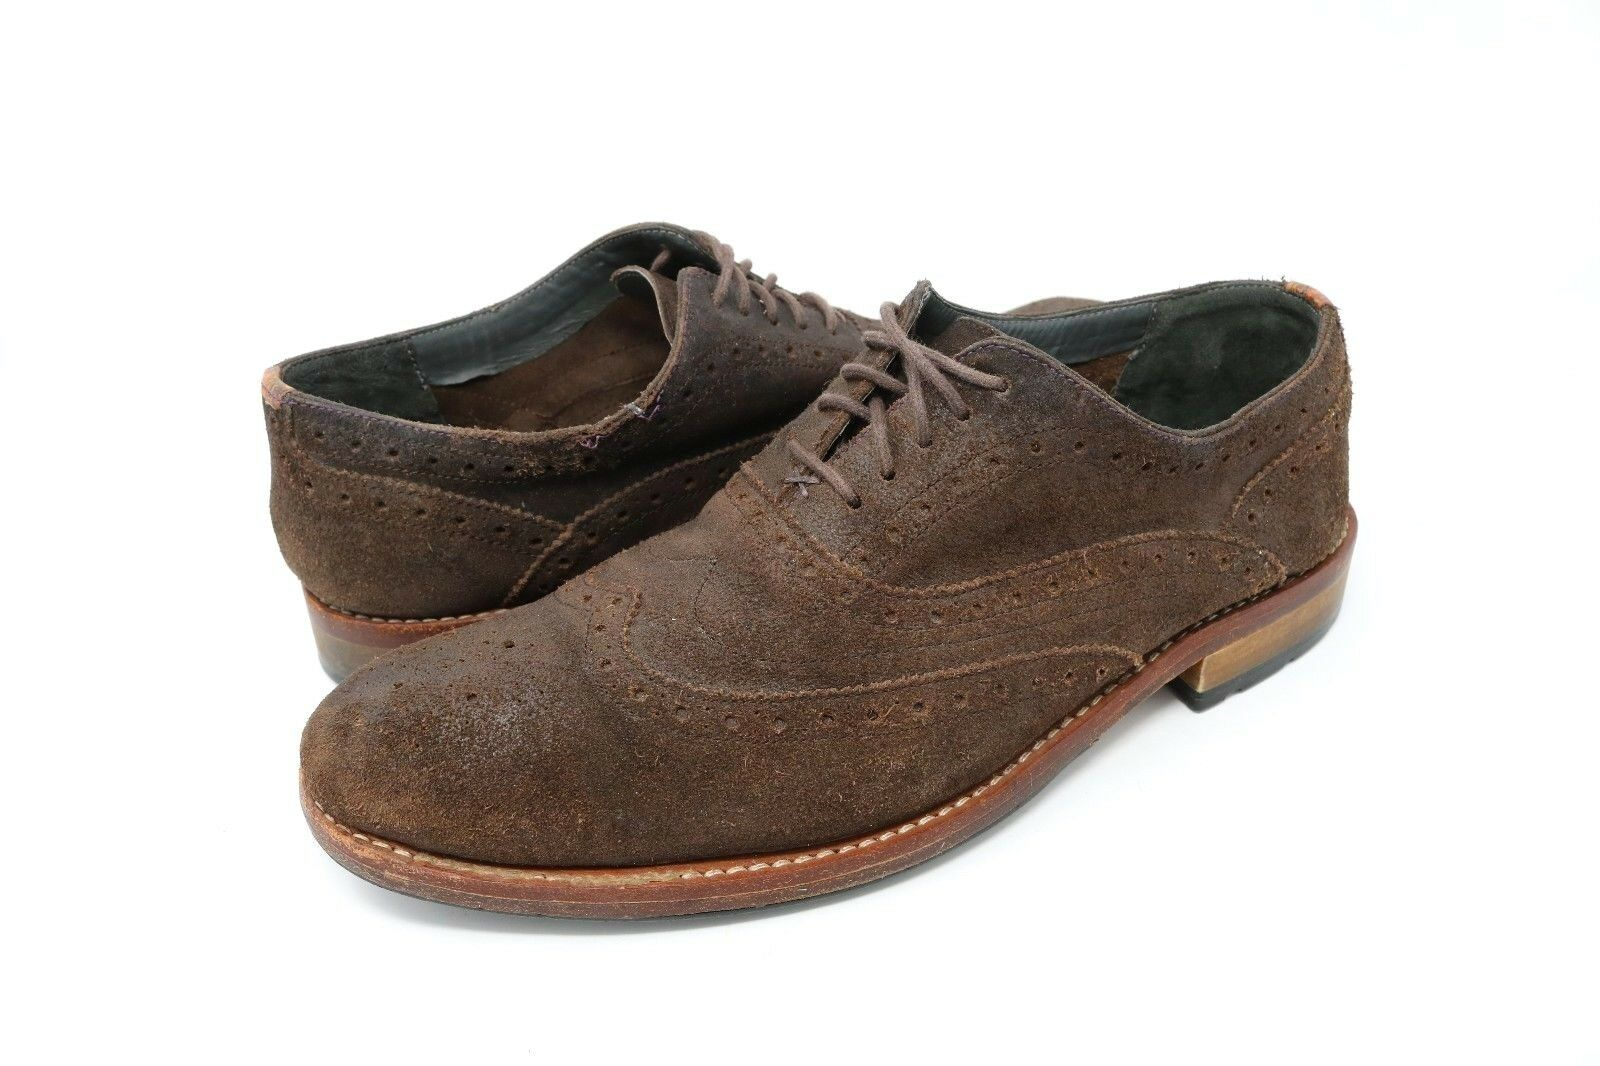 Ted Baker London Mens Brown Nubuck Suede Wingtip Oxford shoes Size 10